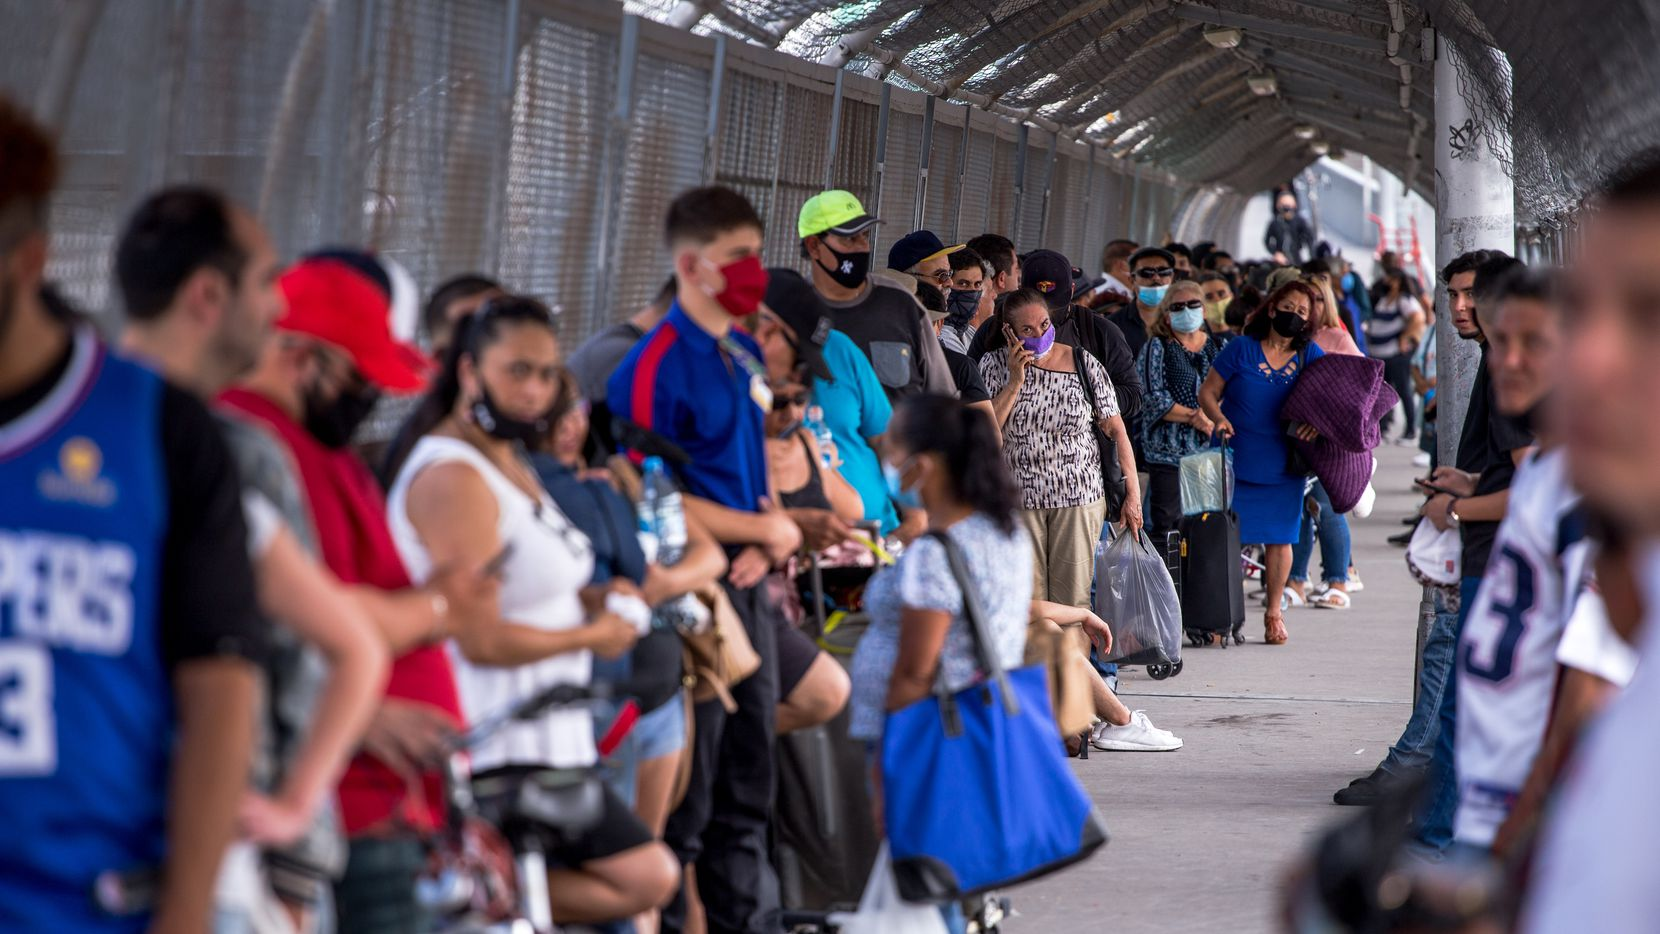 People wait in line to cross the border to El Paso, Texas through the Paso Del Norte Port of Entry in Ciudad Juarez, Chihuahua, Mexico, on Friday, June, 26, 2020.